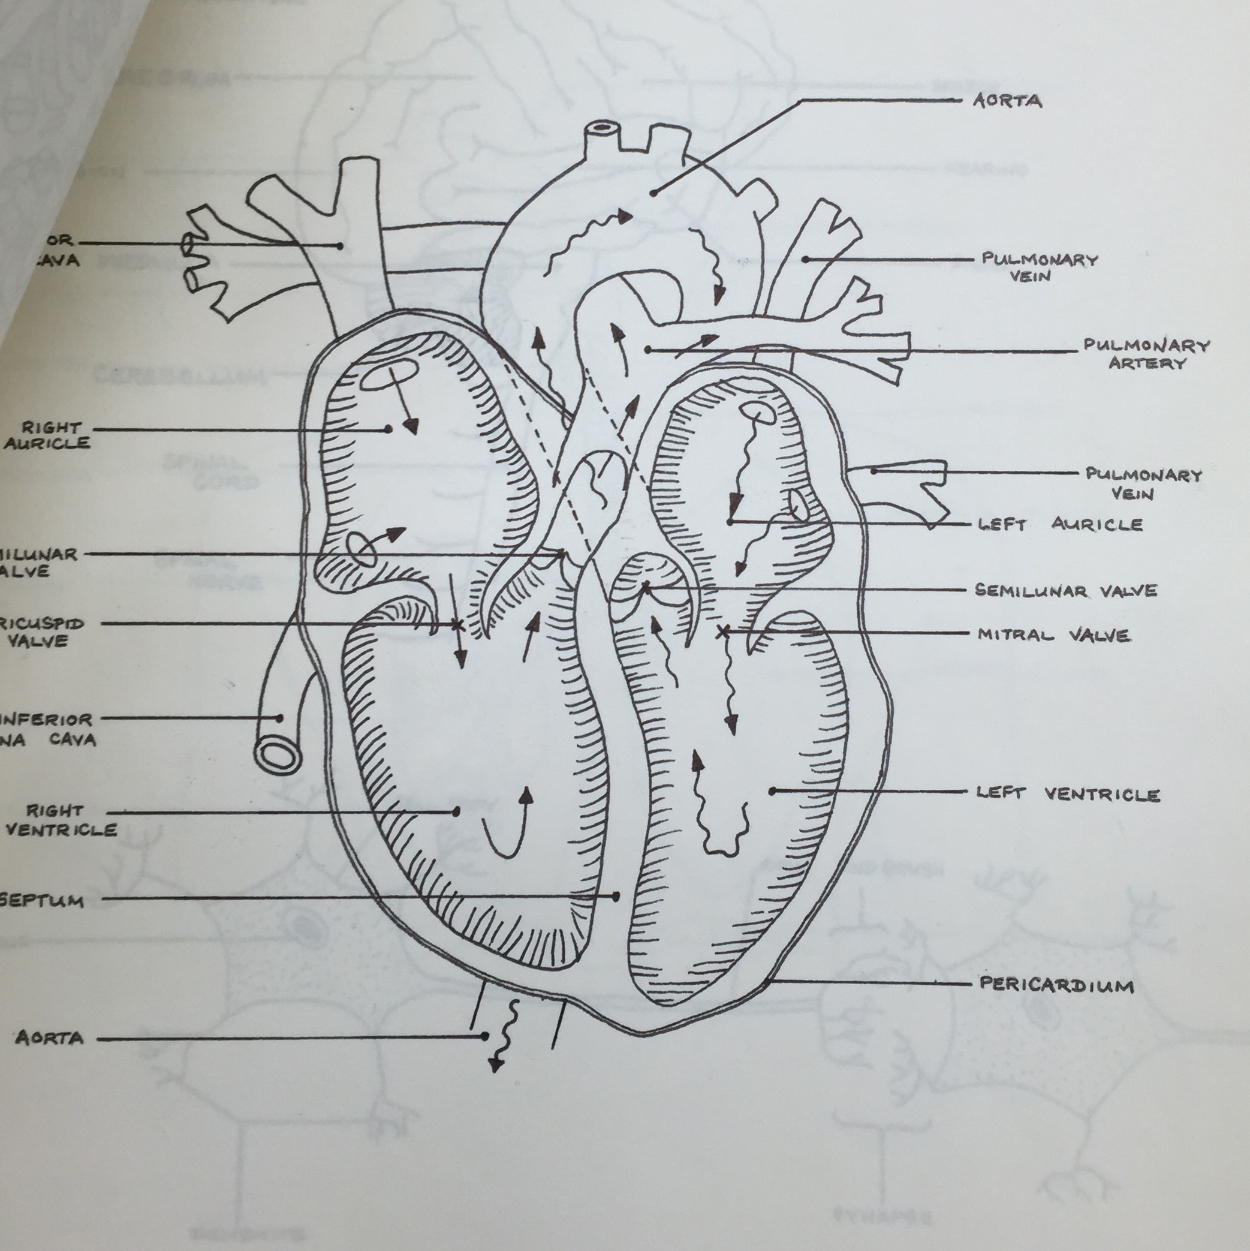 Ms. O'Brien's hand labeled diagram. Her penmanship was so precise... she would frequently fill up entire chalk boards with meticulous science lessons for us to copy and memorize.